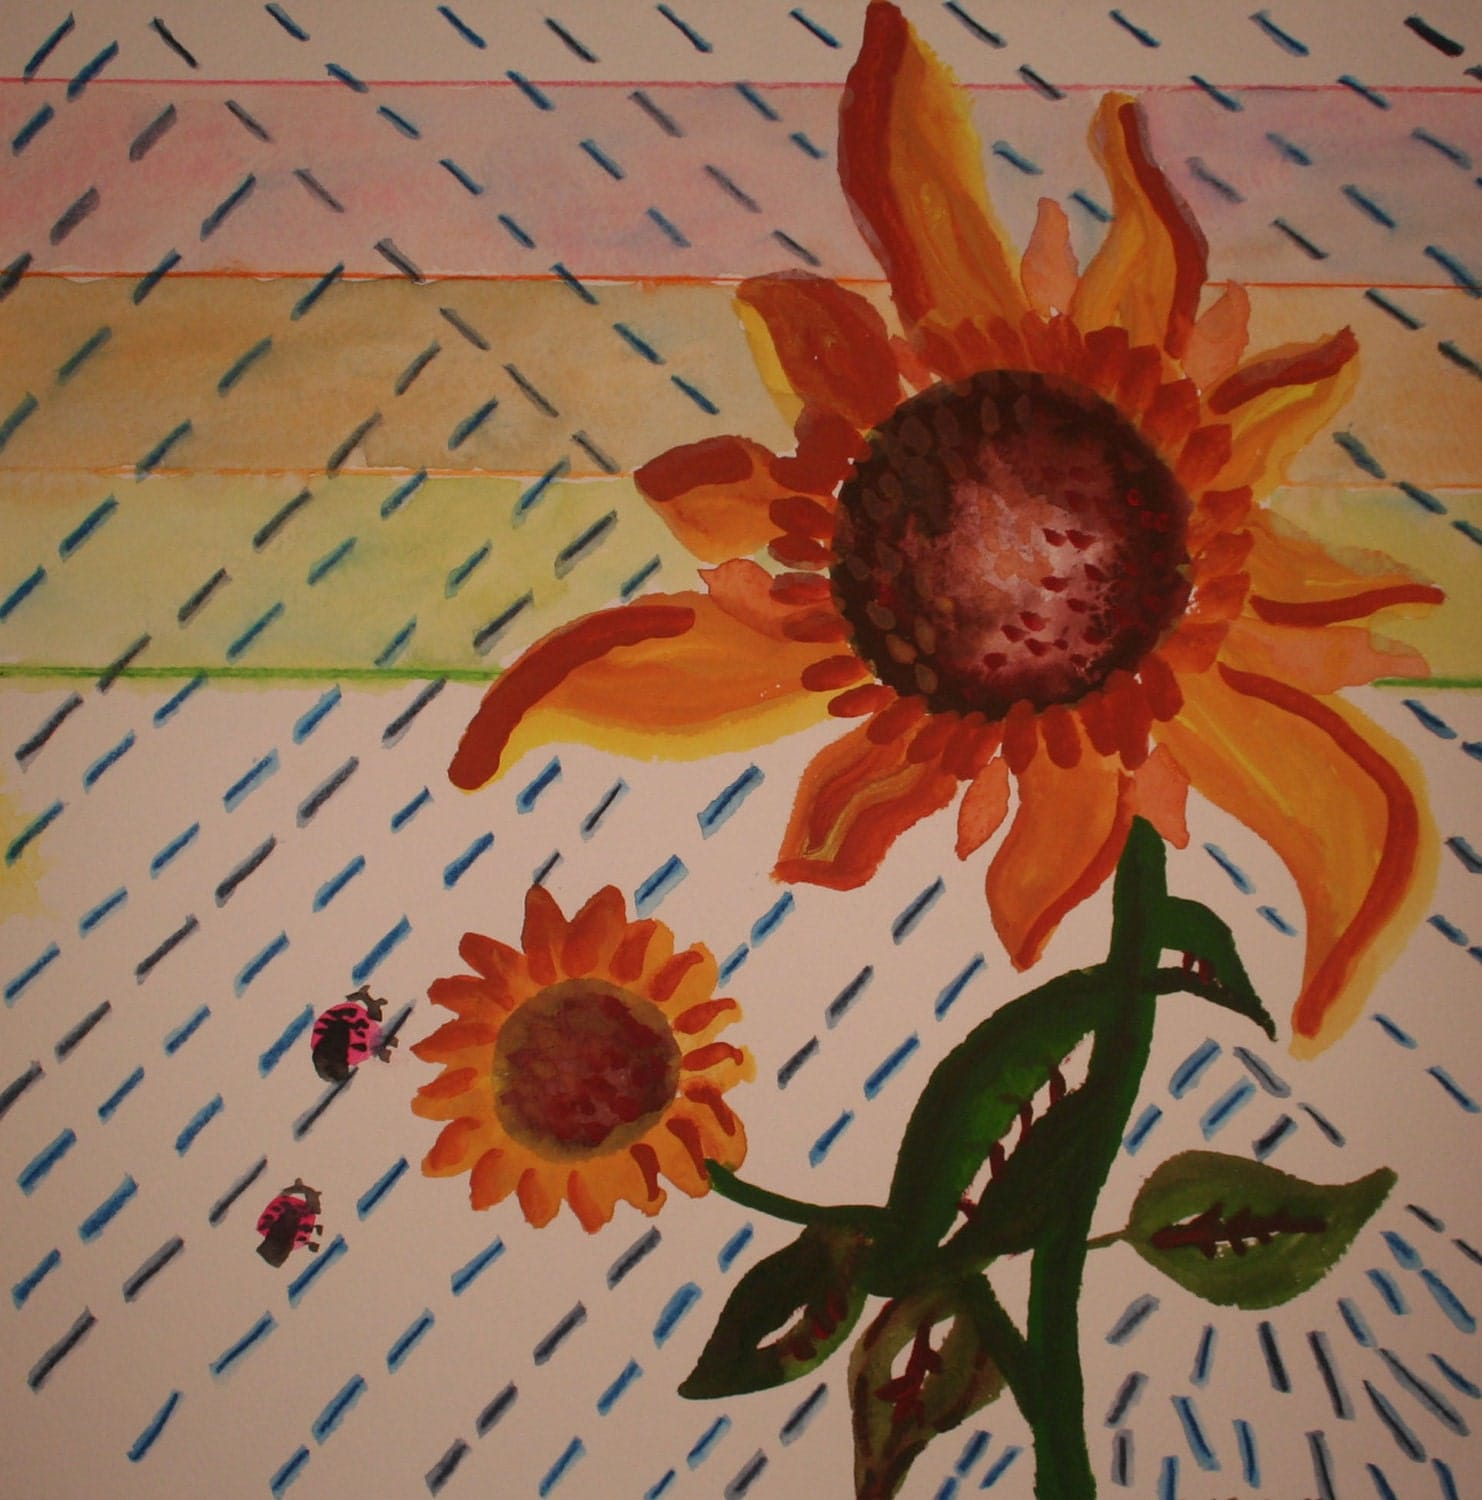 Watercolor Painting: Sunflowers in the Rain